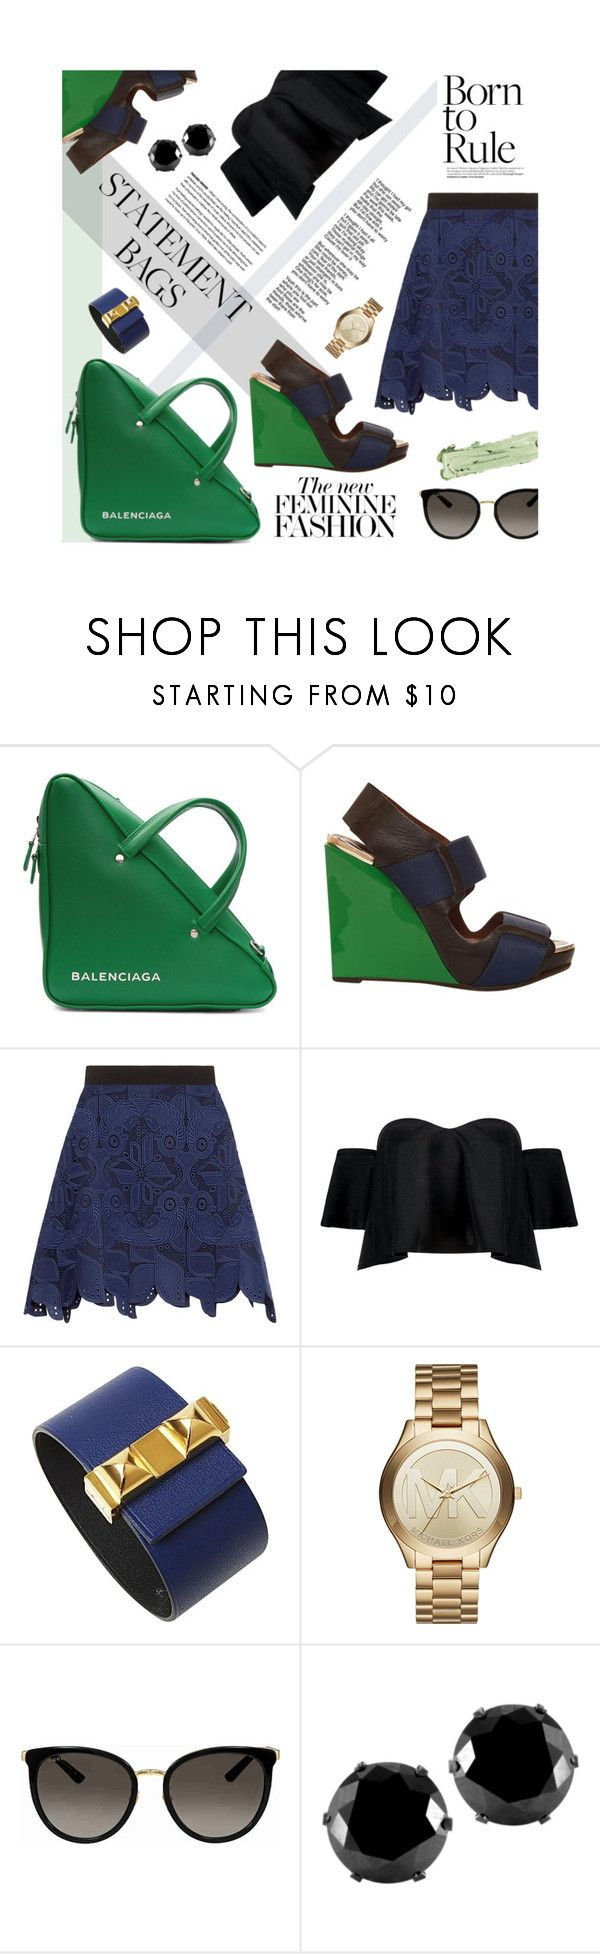 """Statement Bags"" by ellergy ❤ liked on Polyvore featuring Balenciaga, Marni, Antonio Berardi, Boohoo, Versace, Hermès, Michael Kors, Gucci, West Coast Jewelry and By Terry"